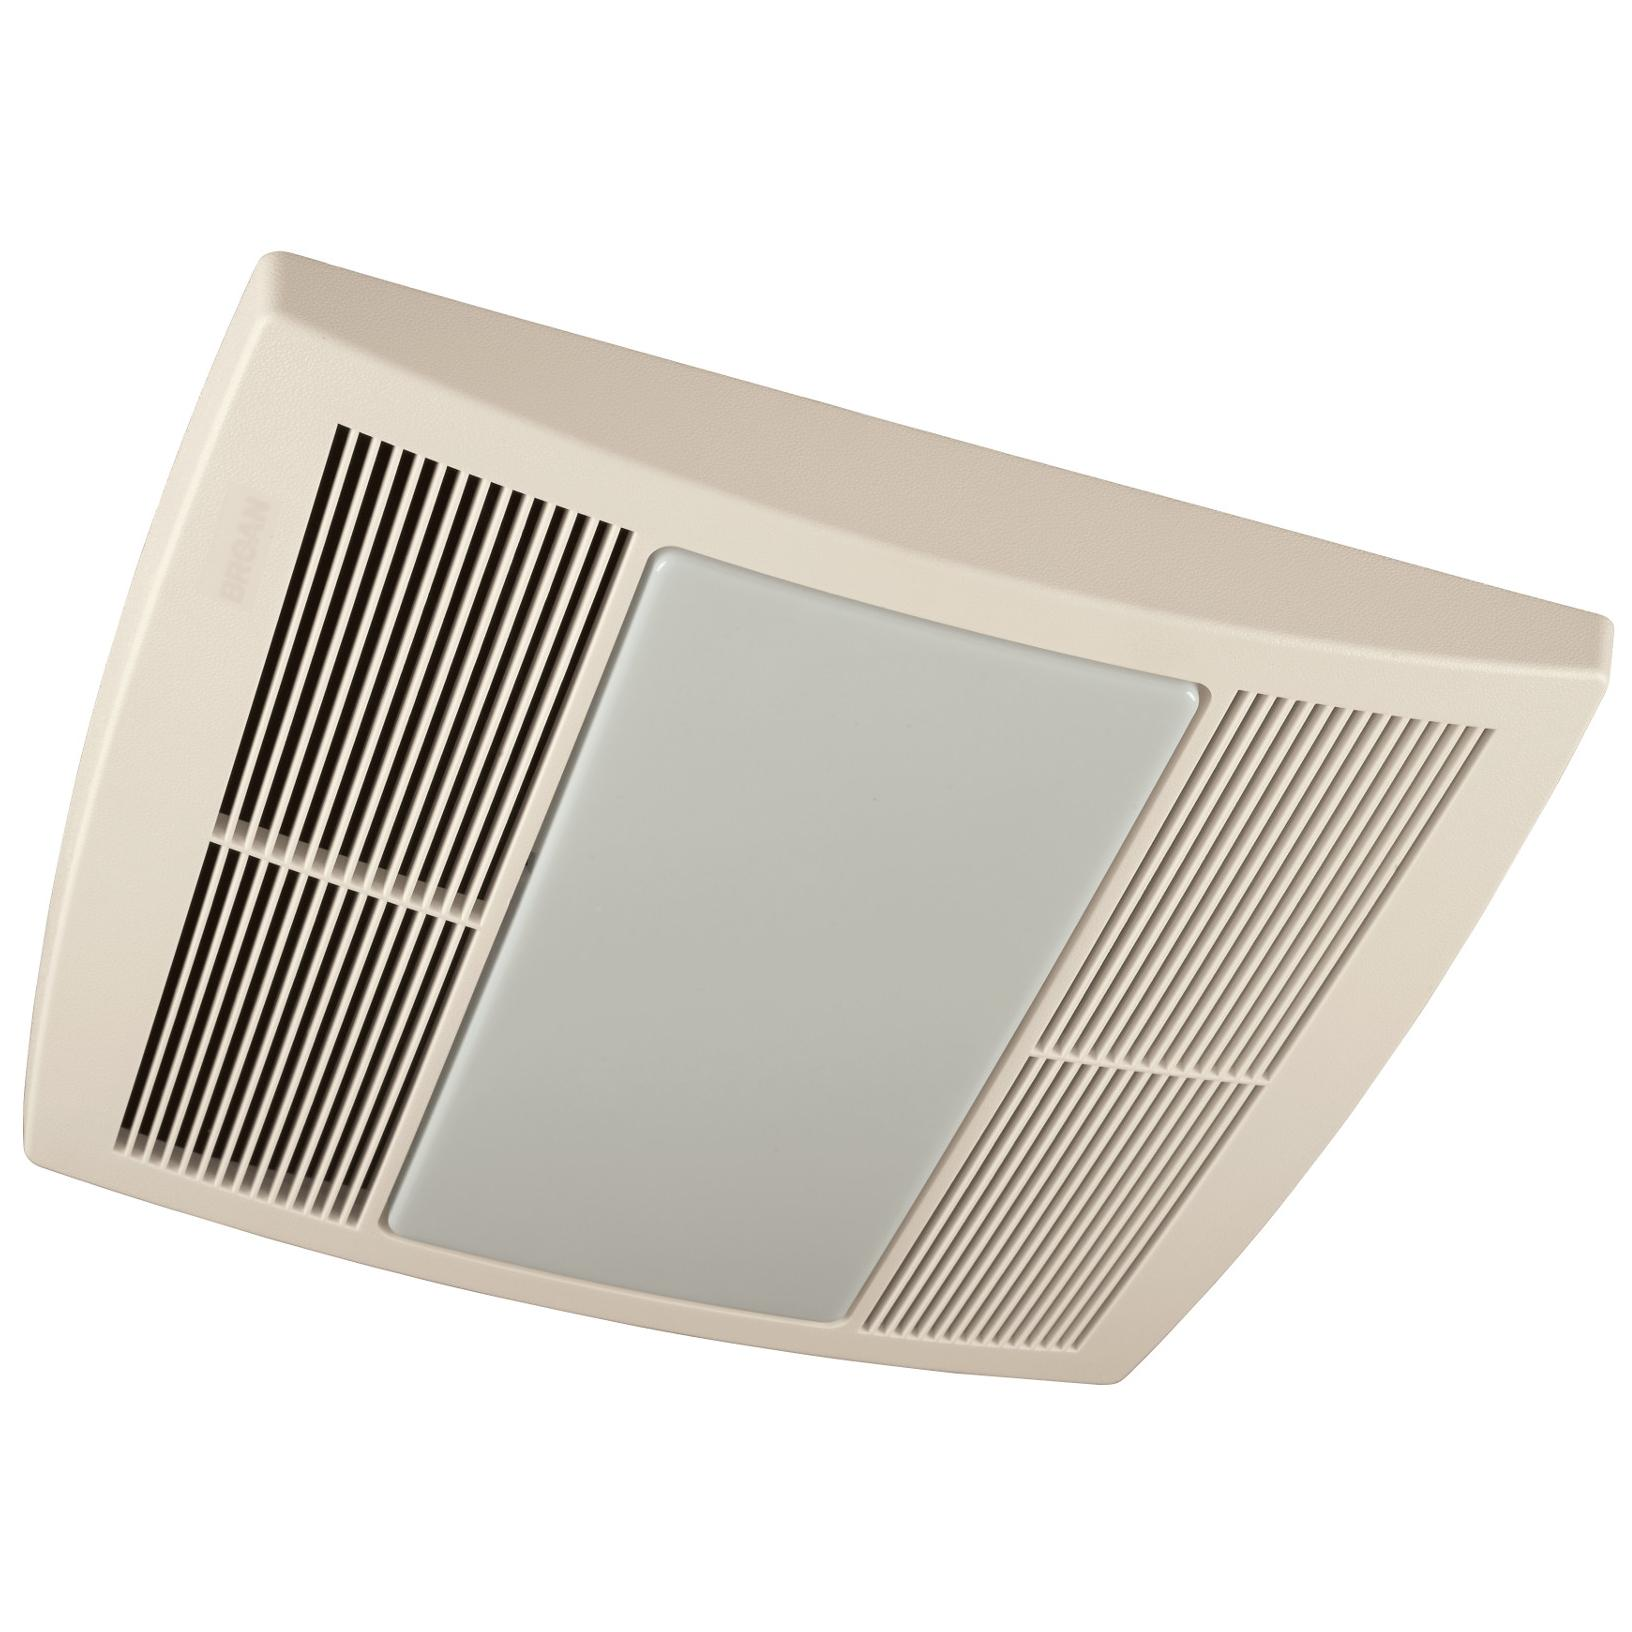 Broan Qtr110l Ultra Silent Bath Fan 110 Cfm White Grille Built In Household Ventilation Fans